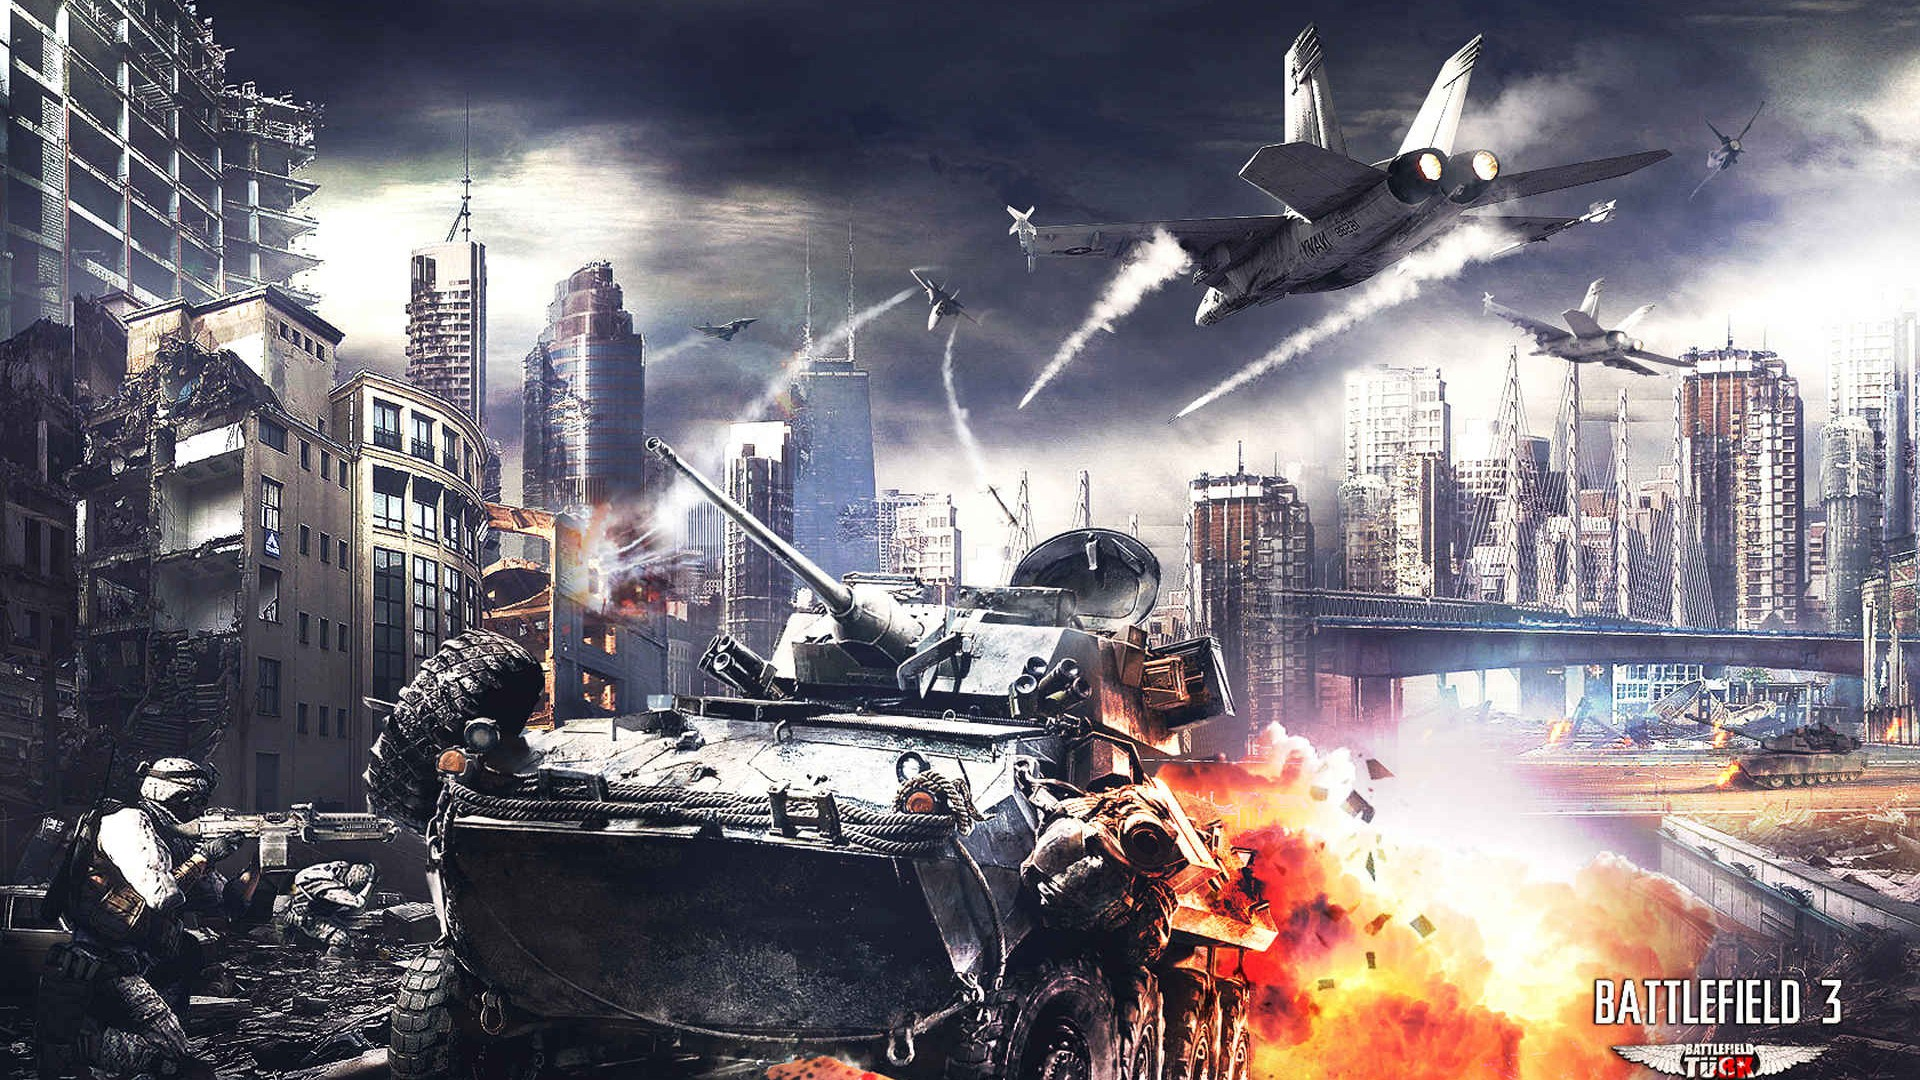 battlefield 3 hd wallpapers #25 - 1920x1080 wallpaper download